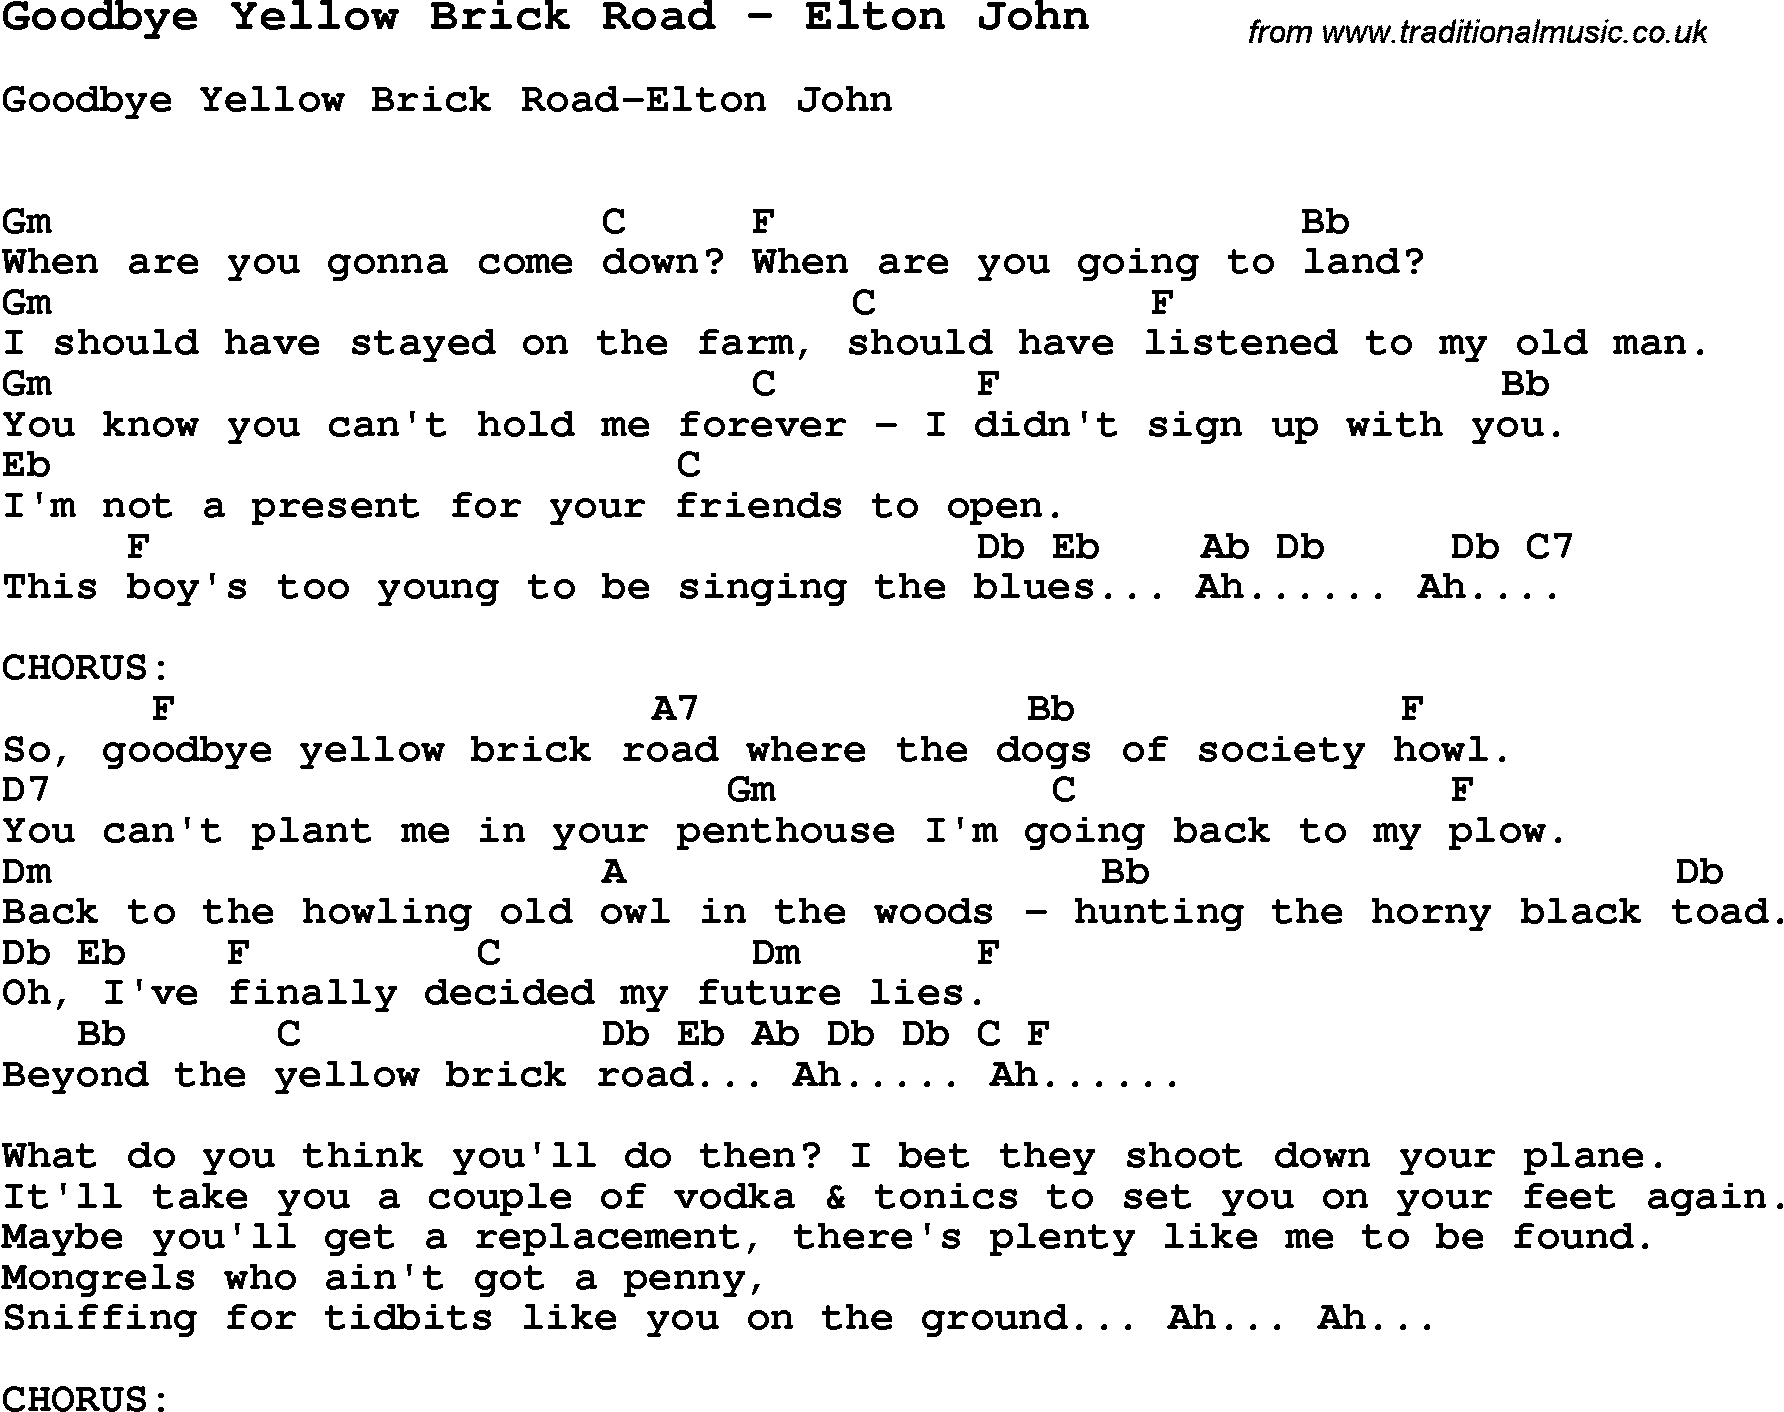 Song goodbye yellow brick road by elton john with lyrics for song goodbye yellow brick road by elton john song lyric for vocal performance plus accompaniment chords for ukulele guitar banjo etc hexwebz Gallery